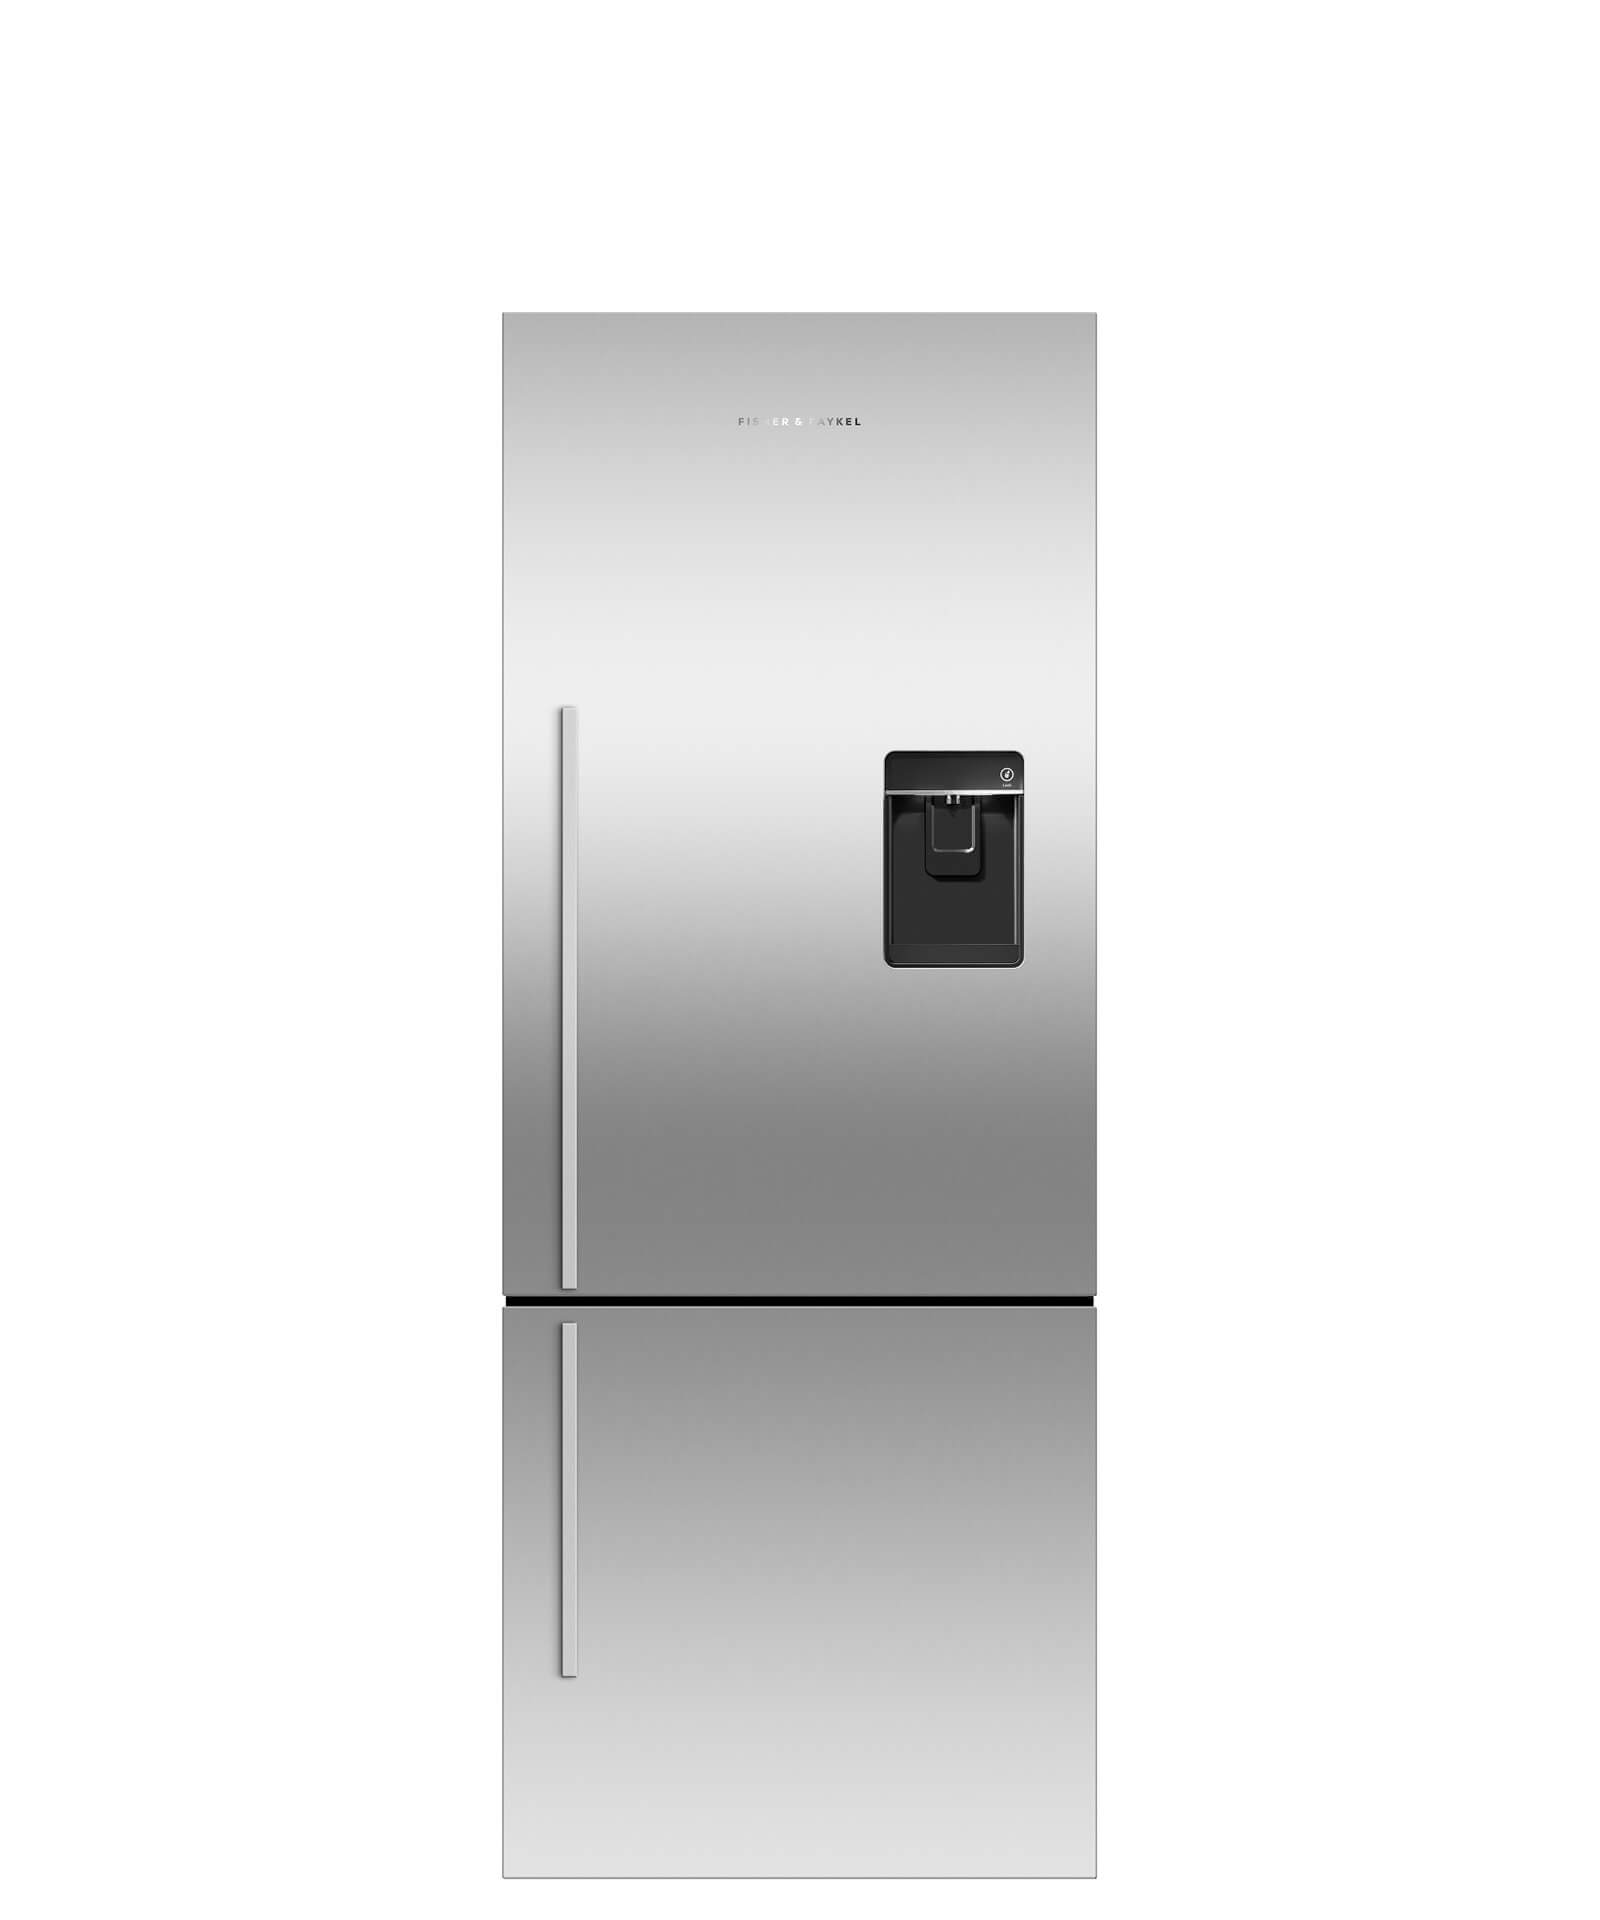 ActiveSmart™ Fridge - 635mm Bottom Freezer with Ice & Water 360L, Fisher & Paykel